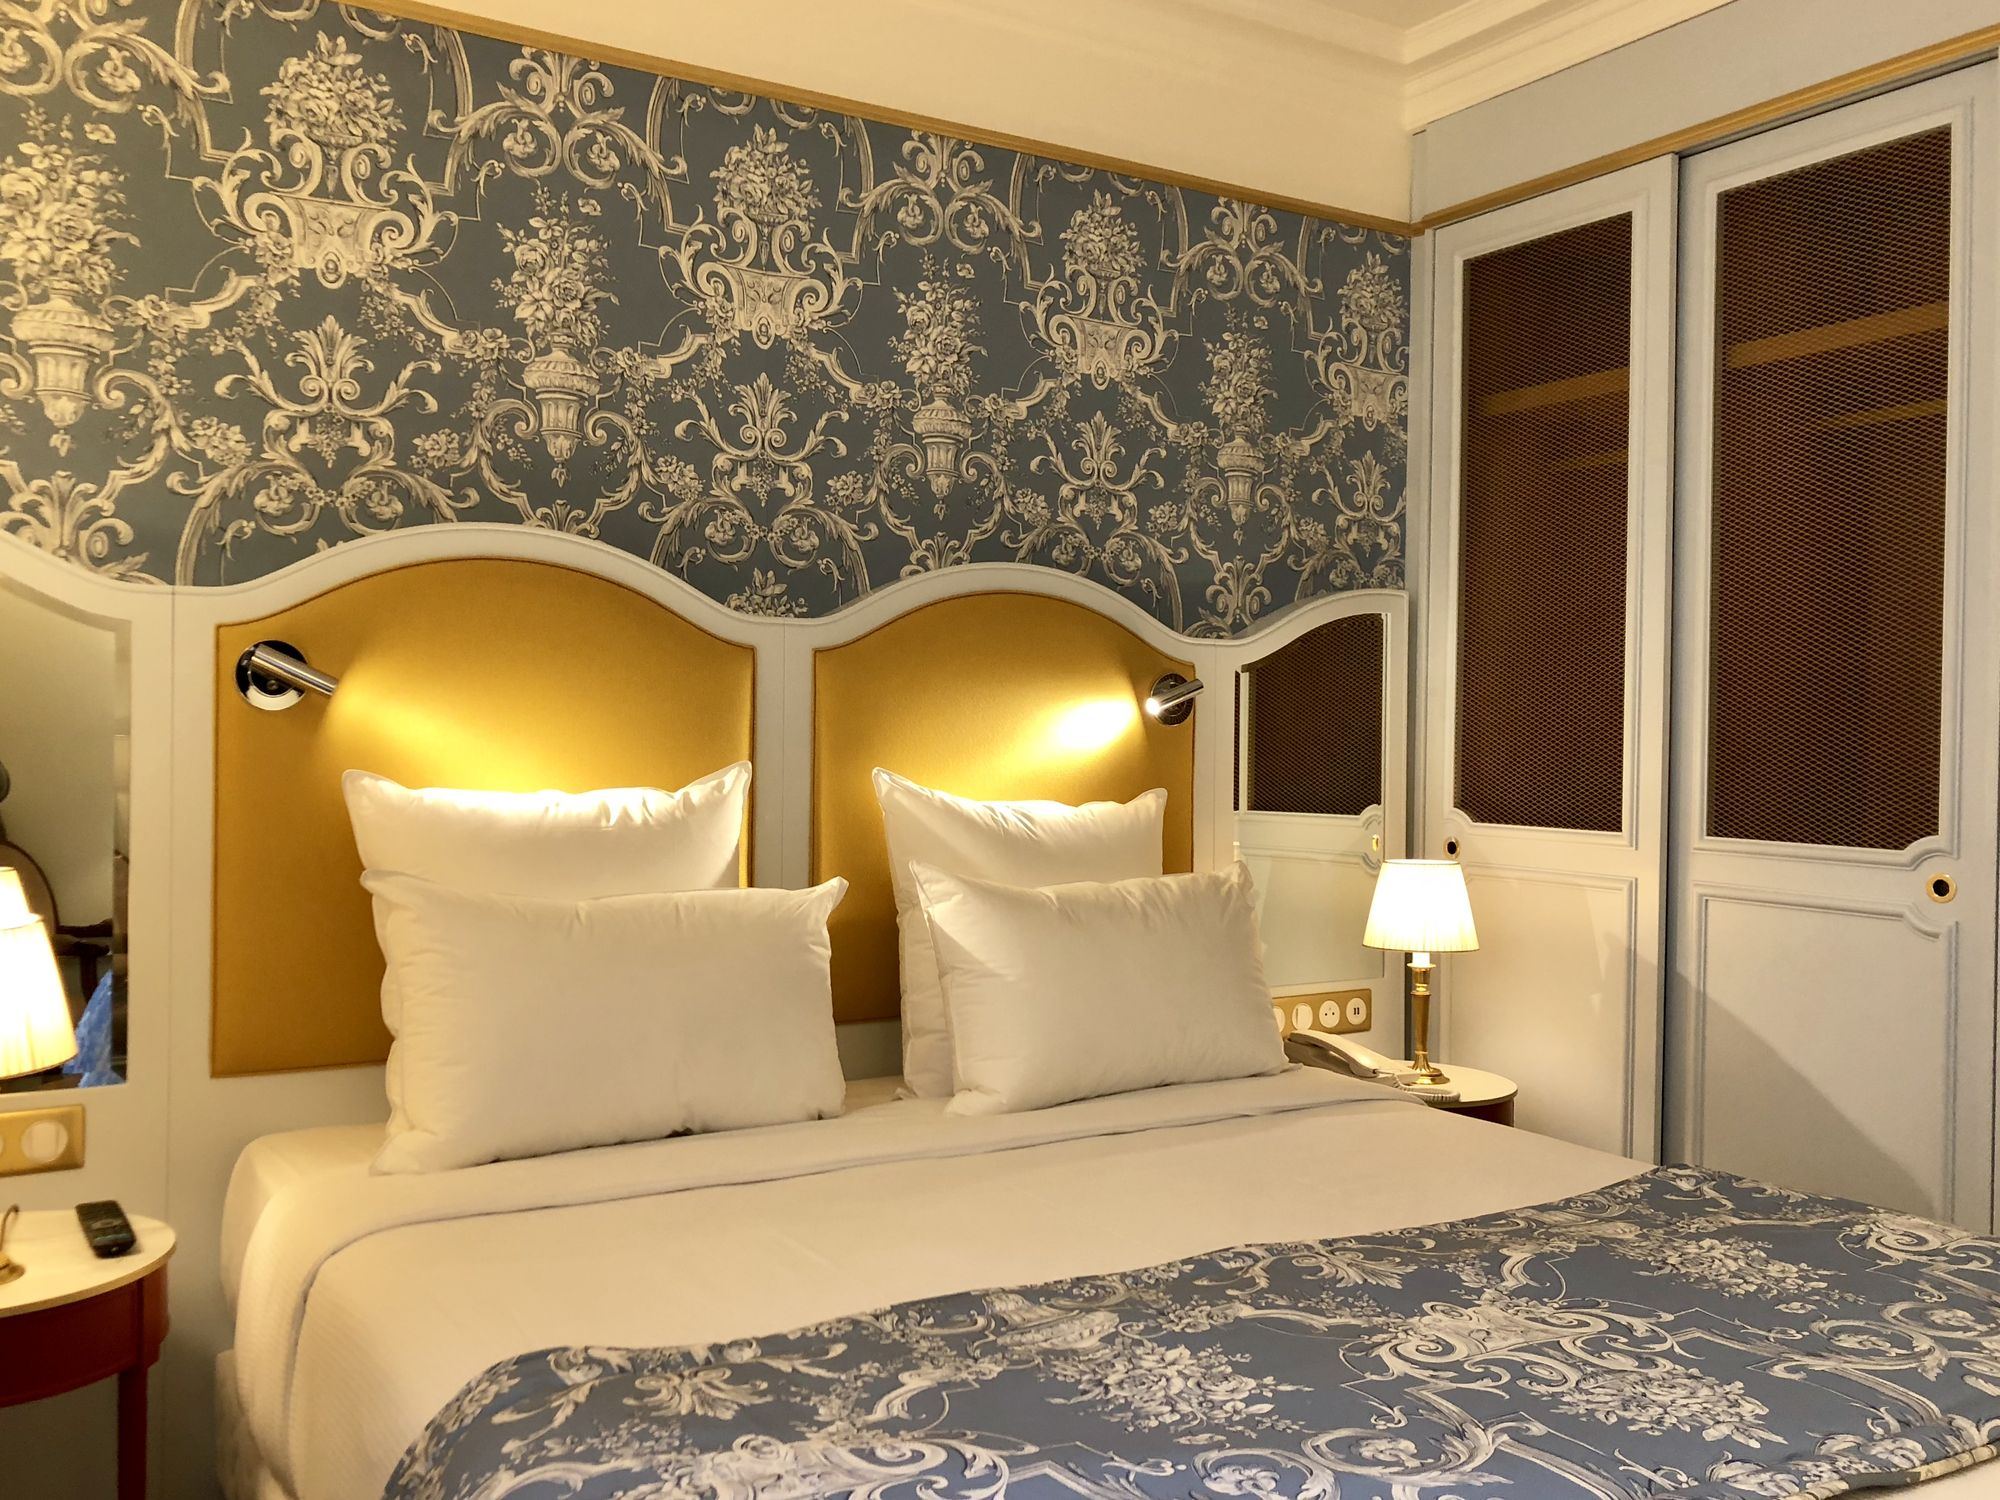 378/Chambres/Classic/hotel-mayfair-paris-classic-room-02.jpg